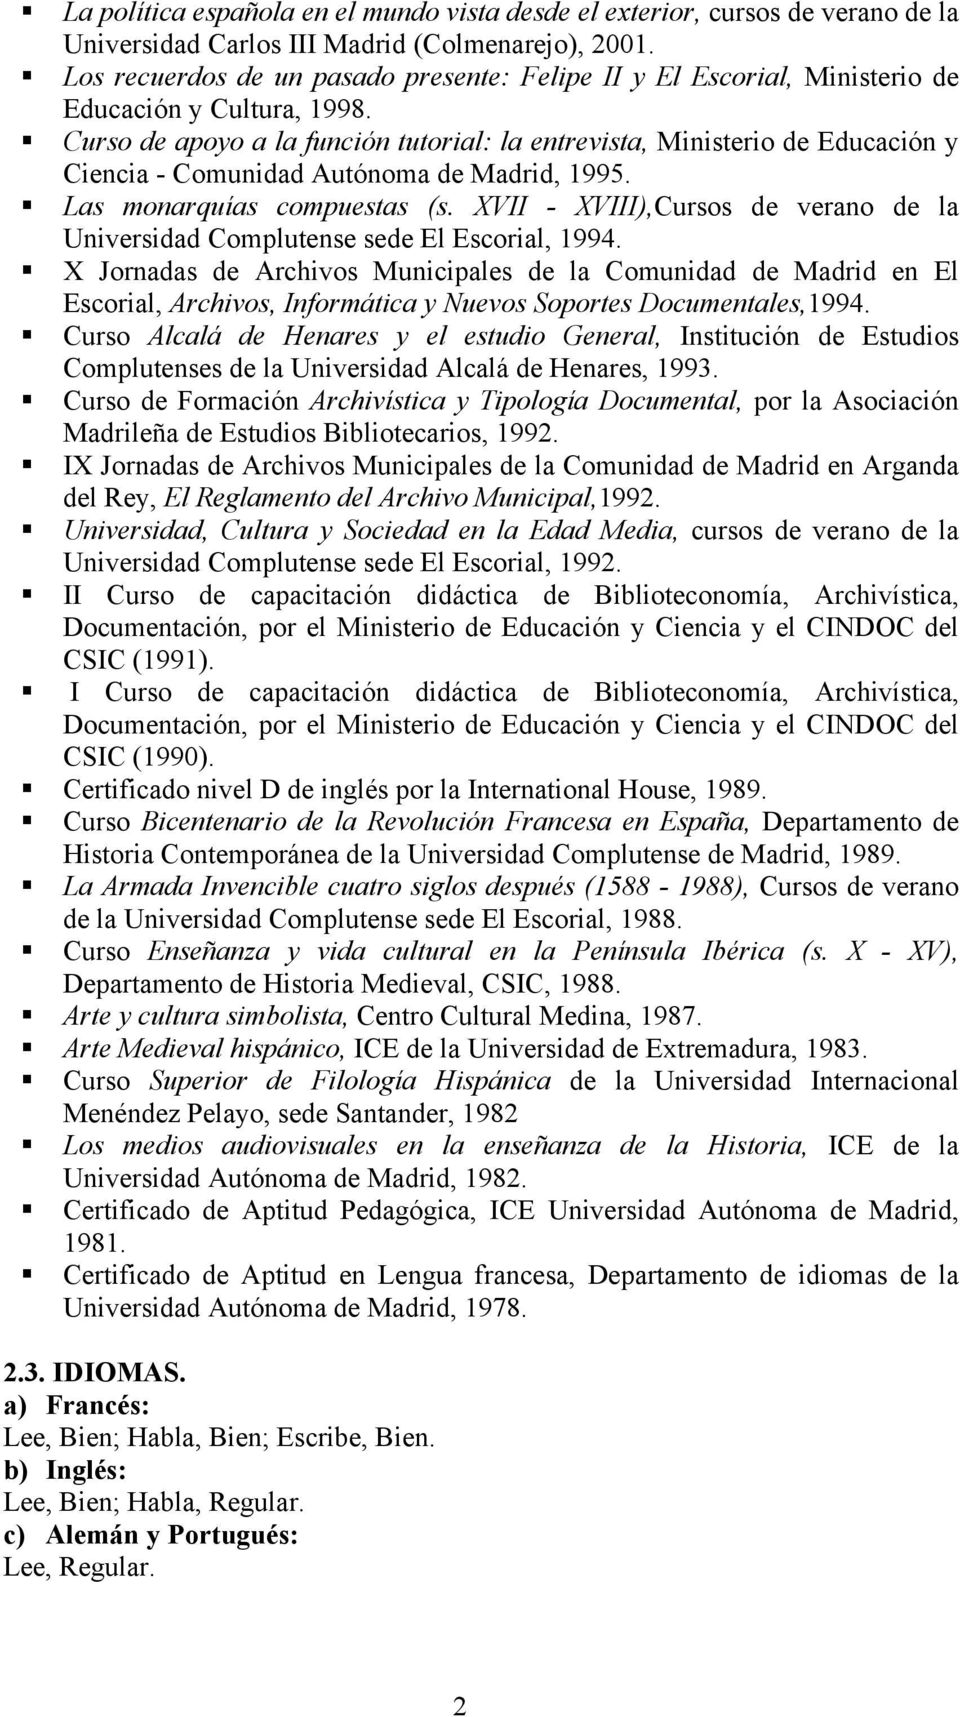 UNIVERSIDAD CARLOS III DE MADRID - PDF - photo#50